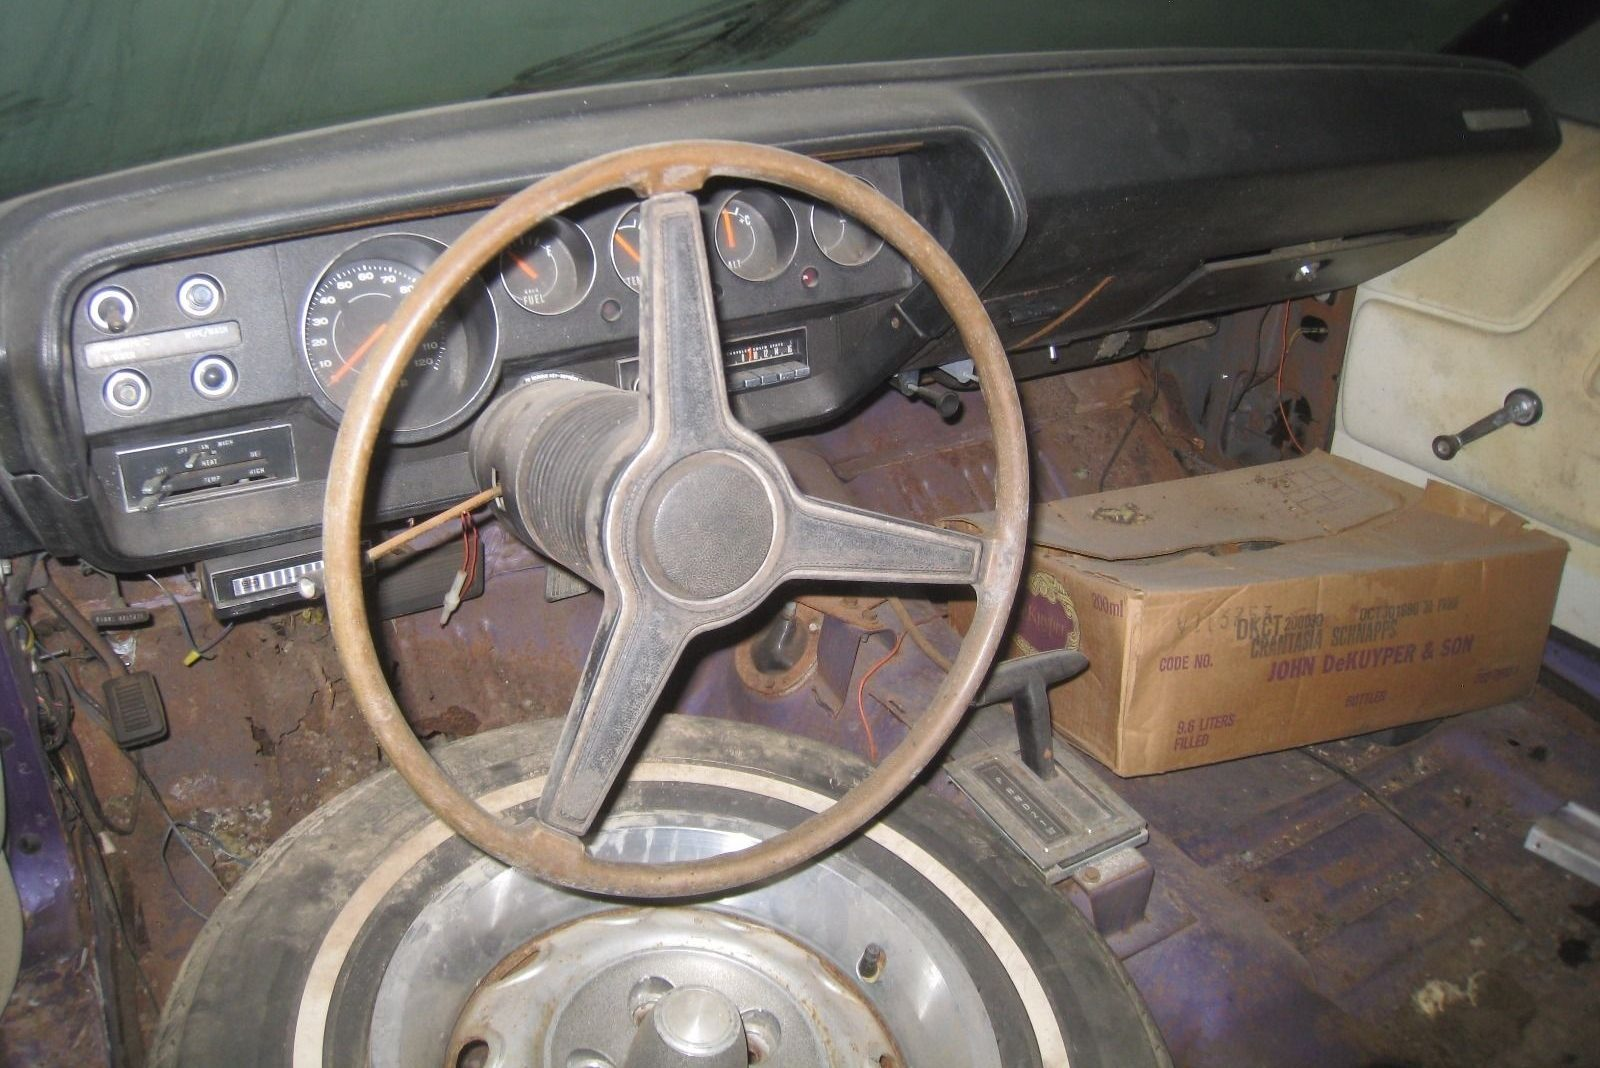 1955 dodge royal barn find for sale - Then I Looked Closer And The Floor Isn T Hopeless And The Dash Actually Looks Pretty Good Maybe This Isn T A Bad Find After